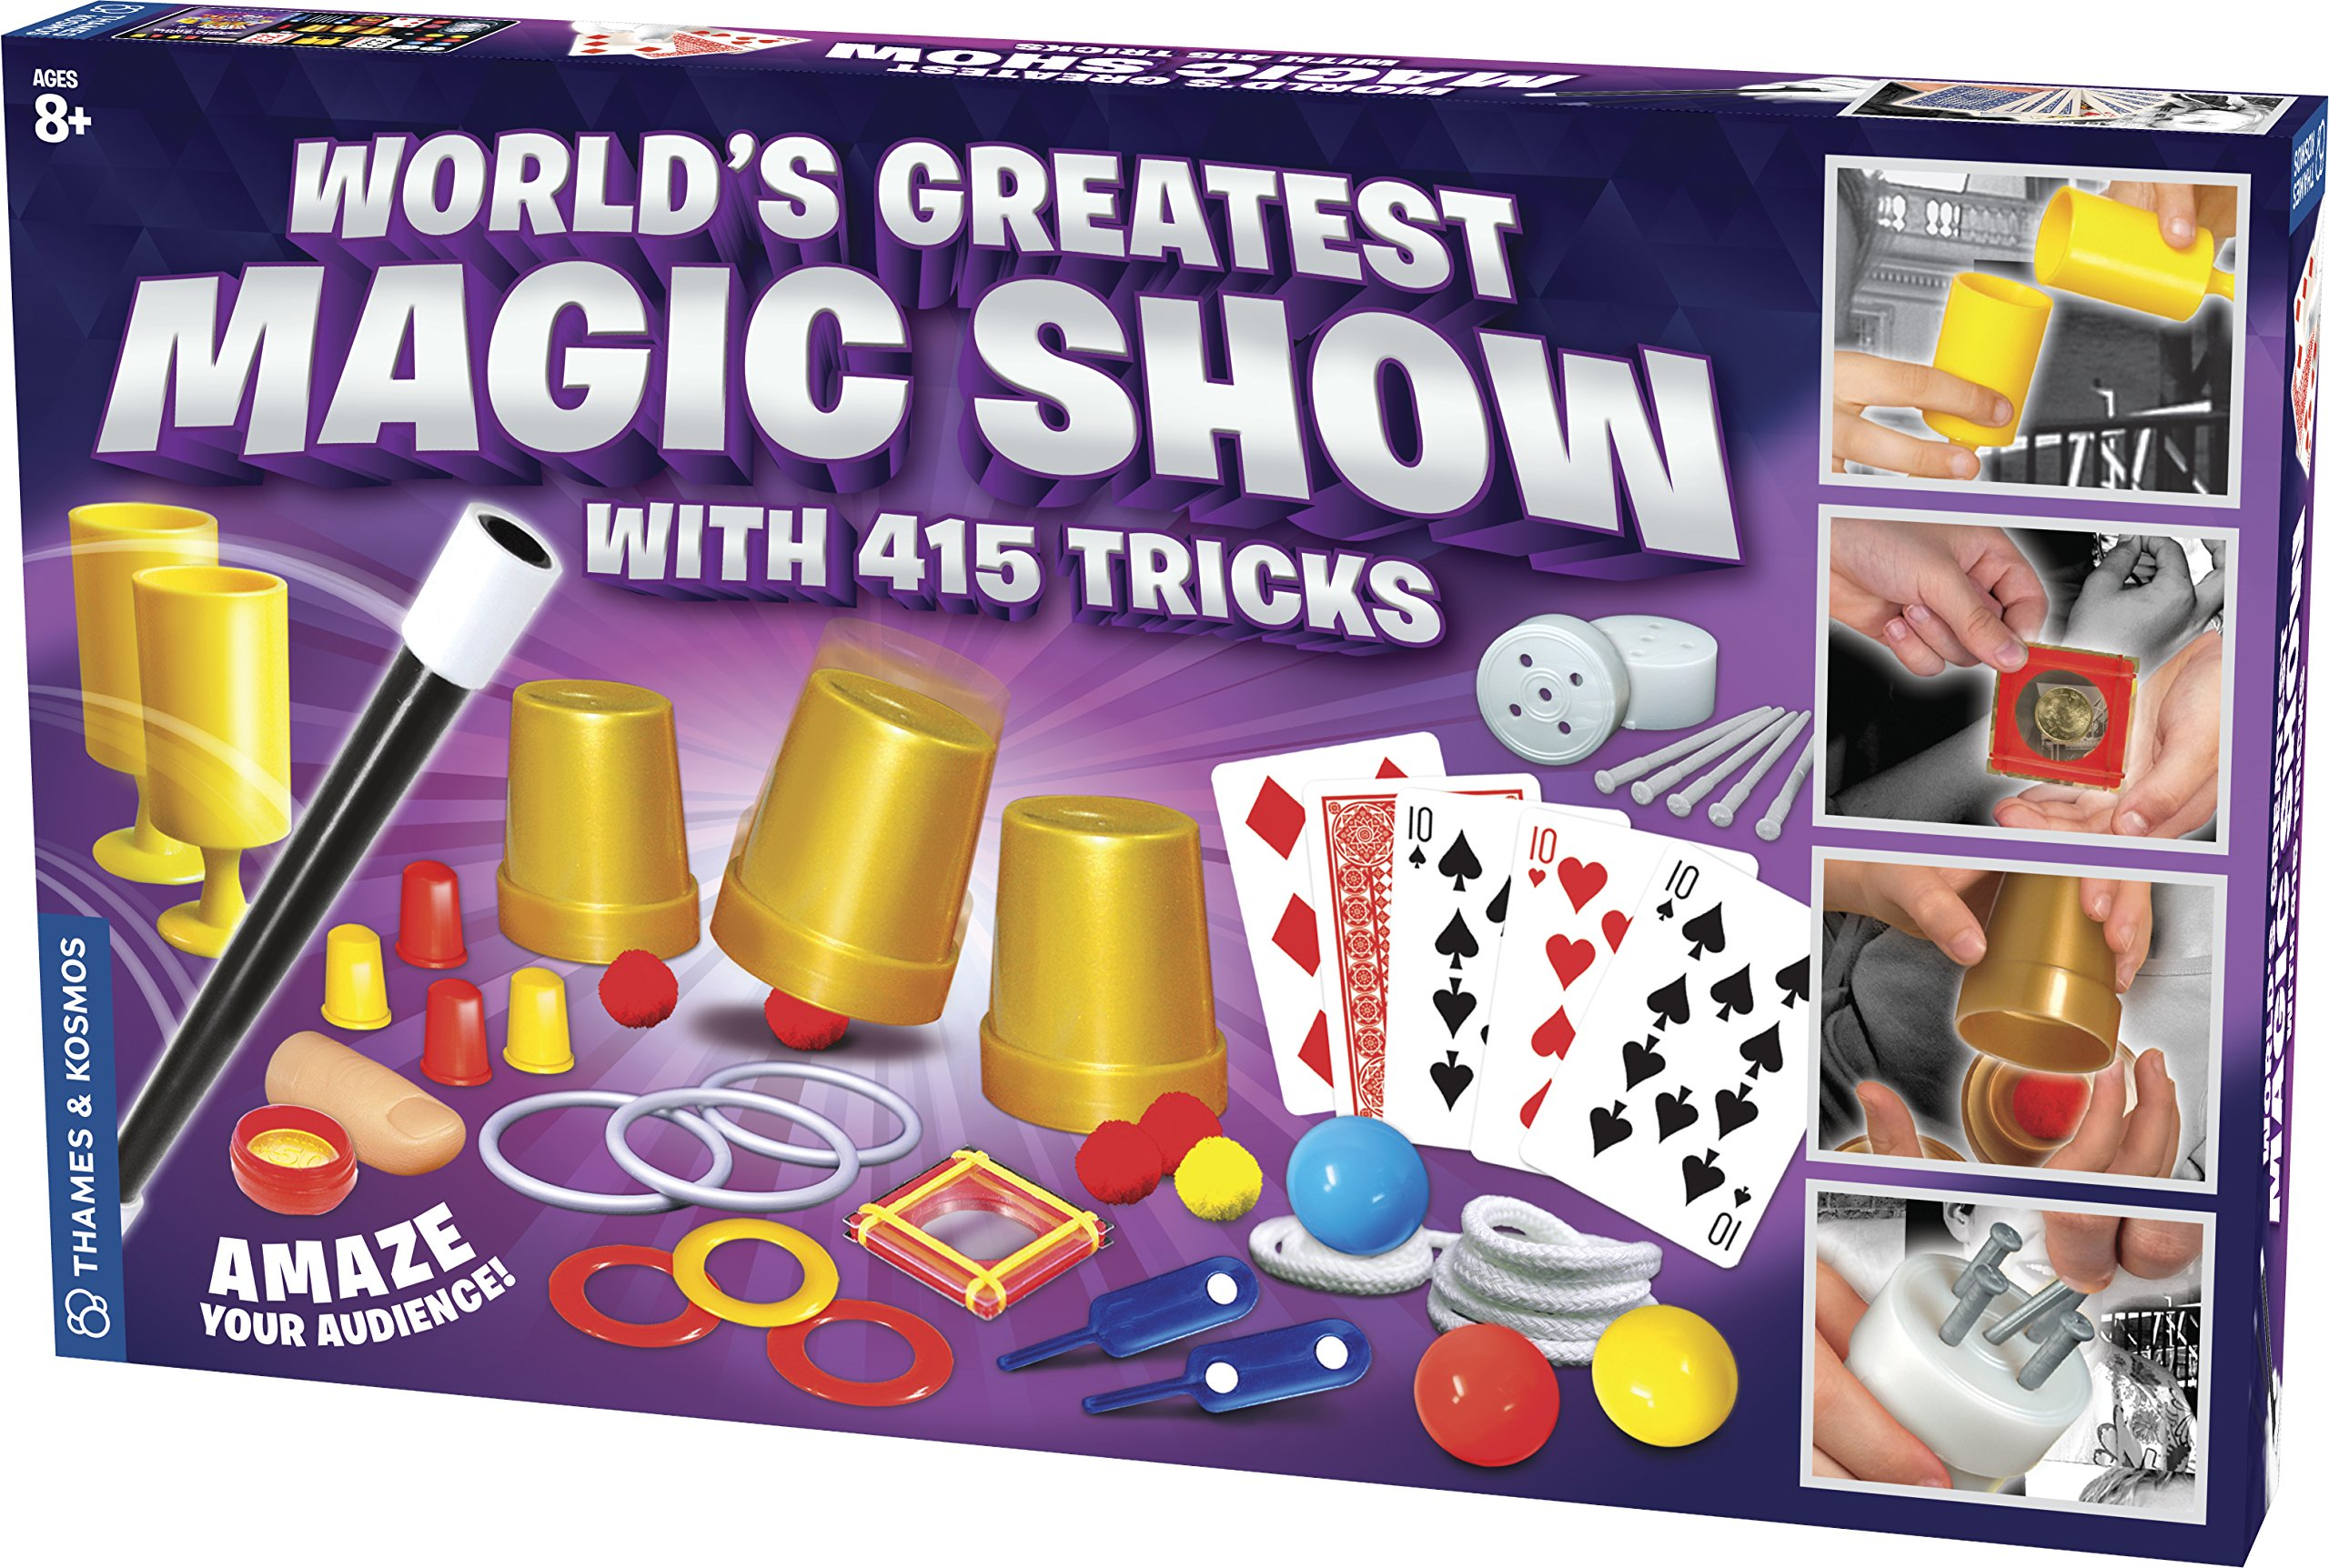 Thames & Kosmos World's Greatest Magic Show with 415 Tricks Magic Set | 60 Page Illustrated Instructions | Fun for Kids Ages 8+ by Thames & Kosmos